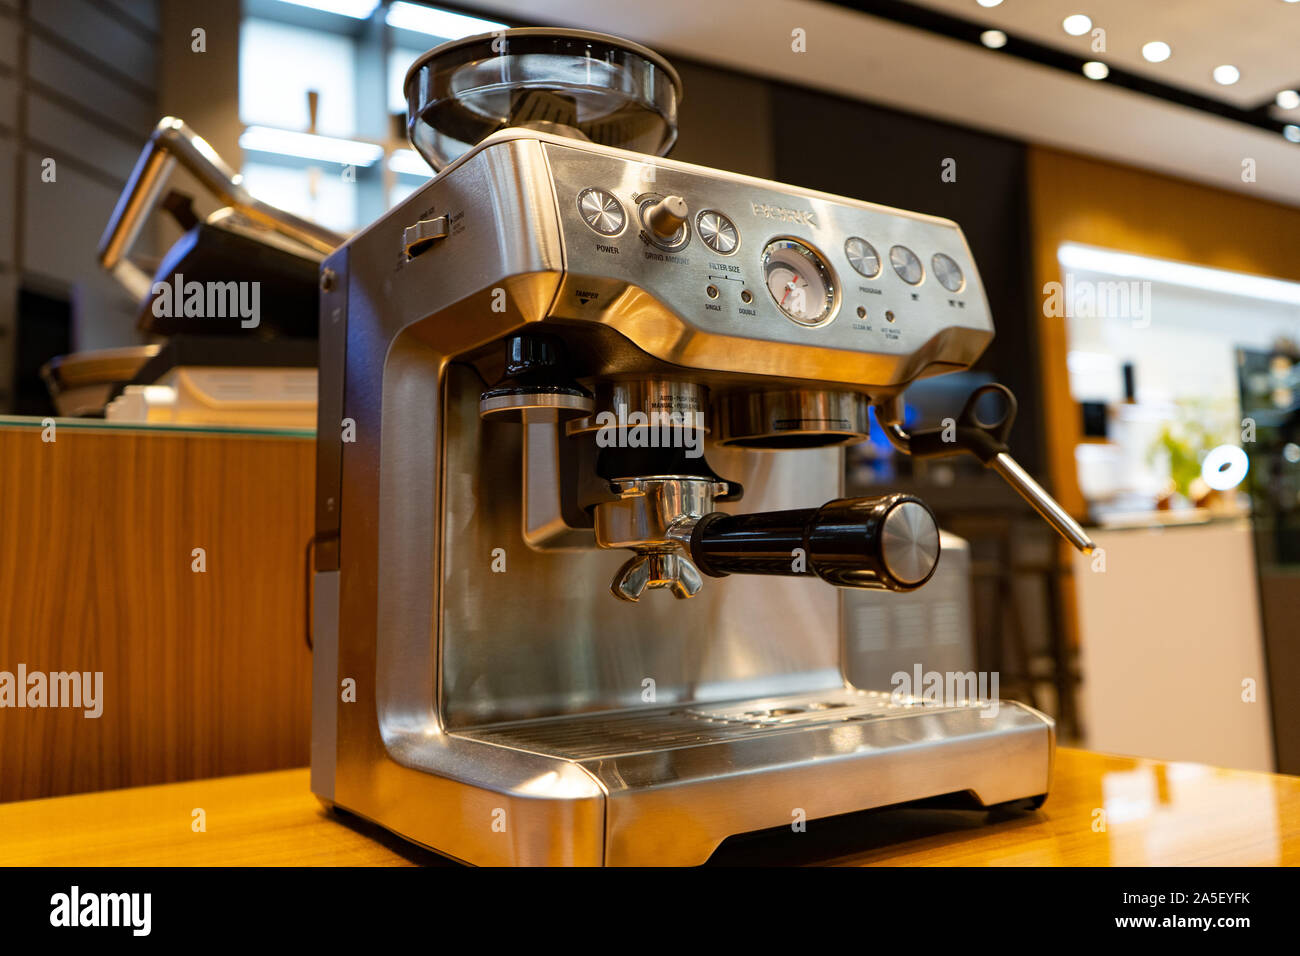 Chelyabinsk Region Russia August 2019 Official Boutique Of Home Appliances Of The German Manufacturer Bork Electronic Gmbh Branded Store Premiu Stock Photo Alamy